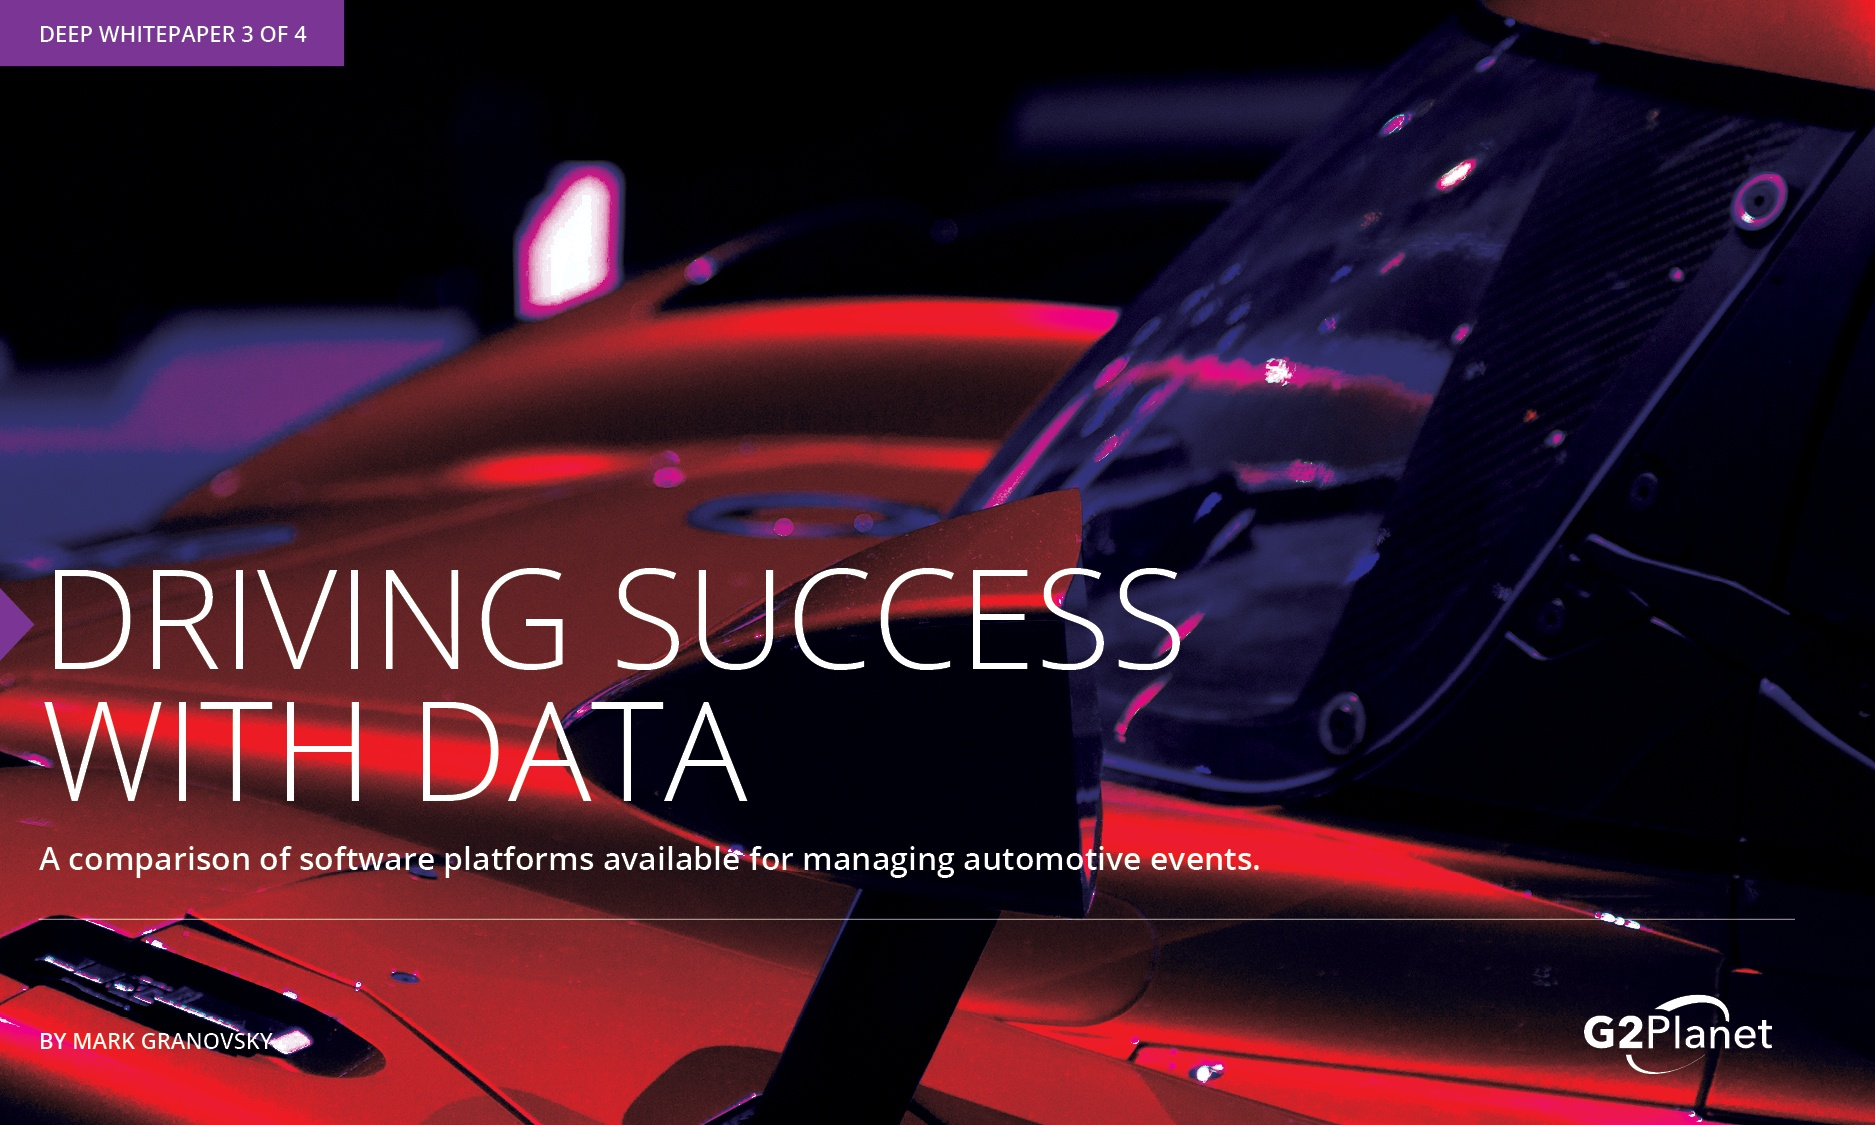 Driving Success with Data